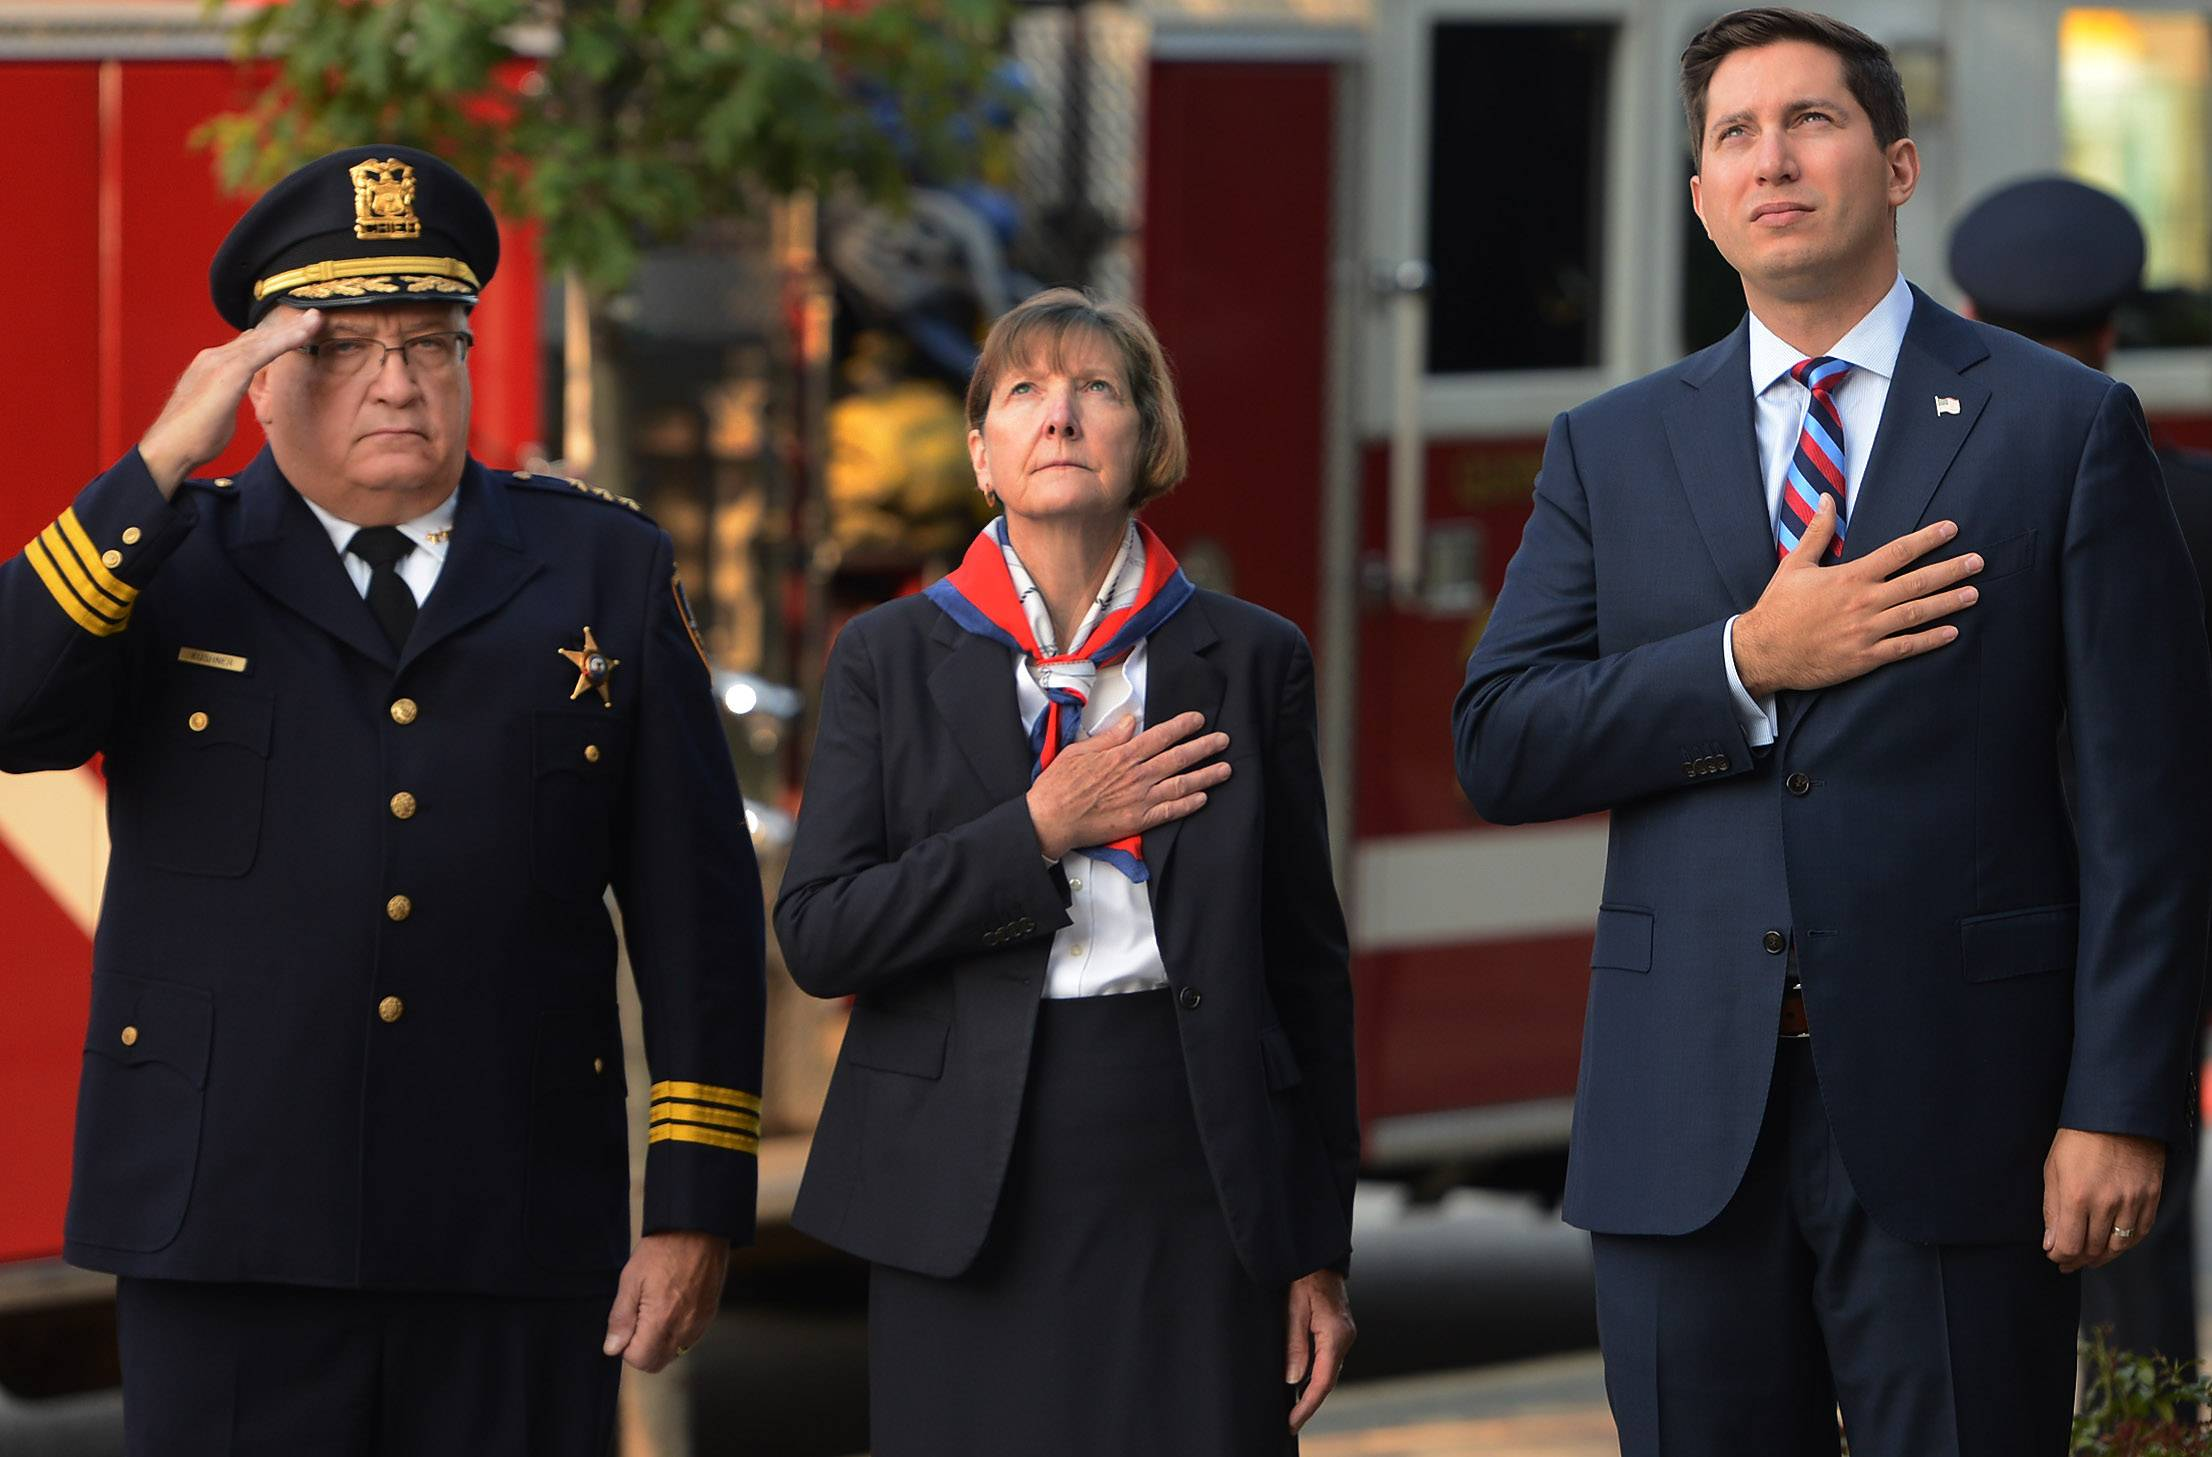 Des Plaines Police Chief William Kushner, left, Police and Fire Commissioner Deb Lester, and Mayor Matt Bogusz stand at attention during the playing of taps during the Sept. 11 remembrance ceremony in Des Plaines at city hall.